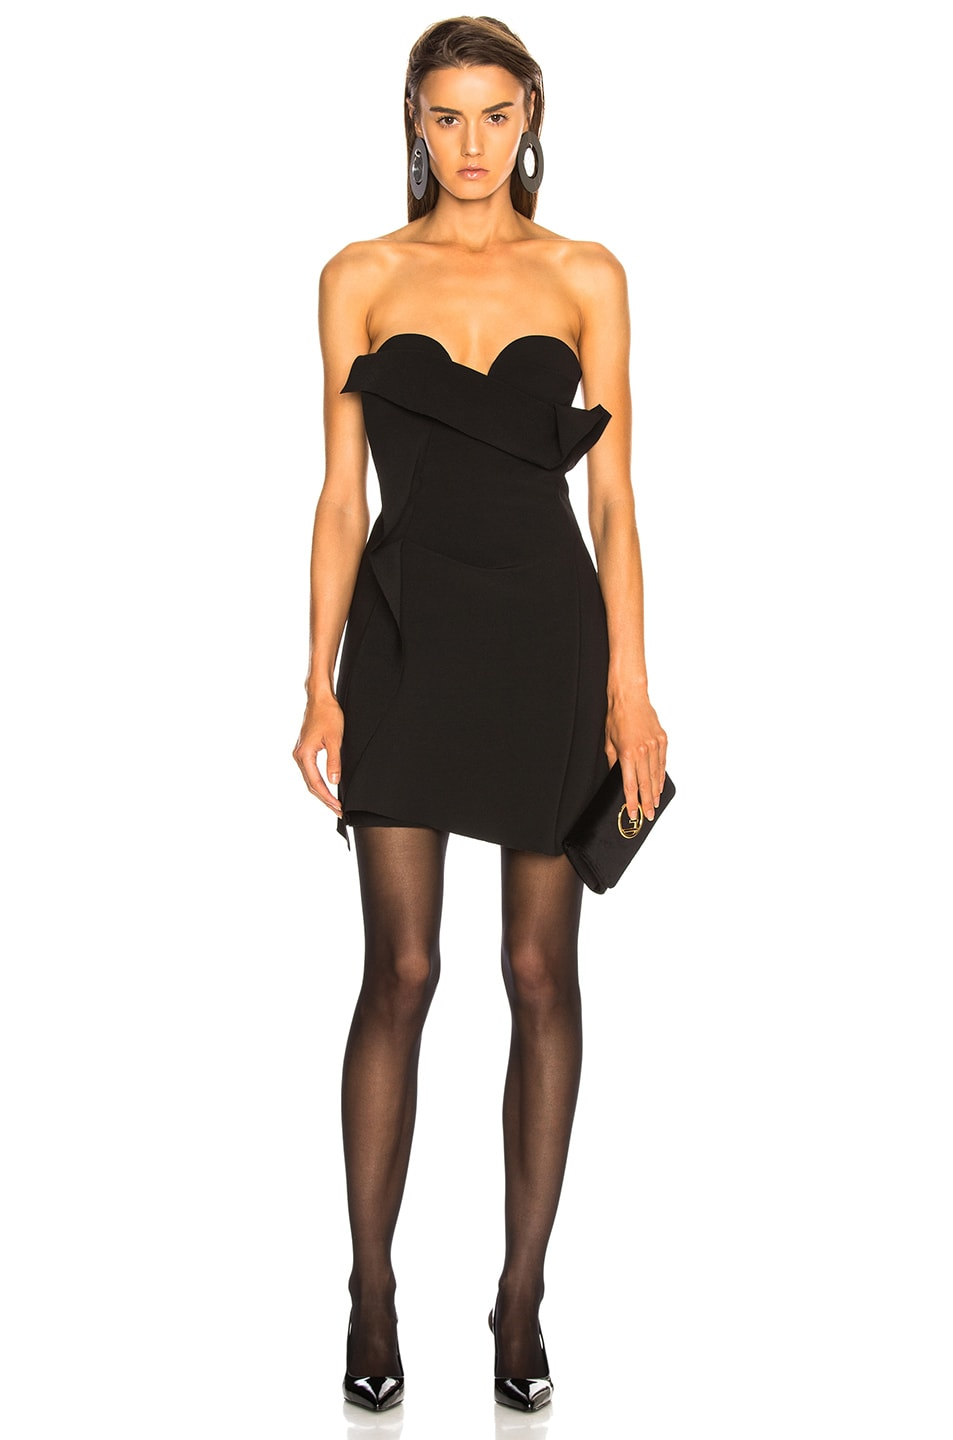 Carmen March STRAPLESS MINI DRESS